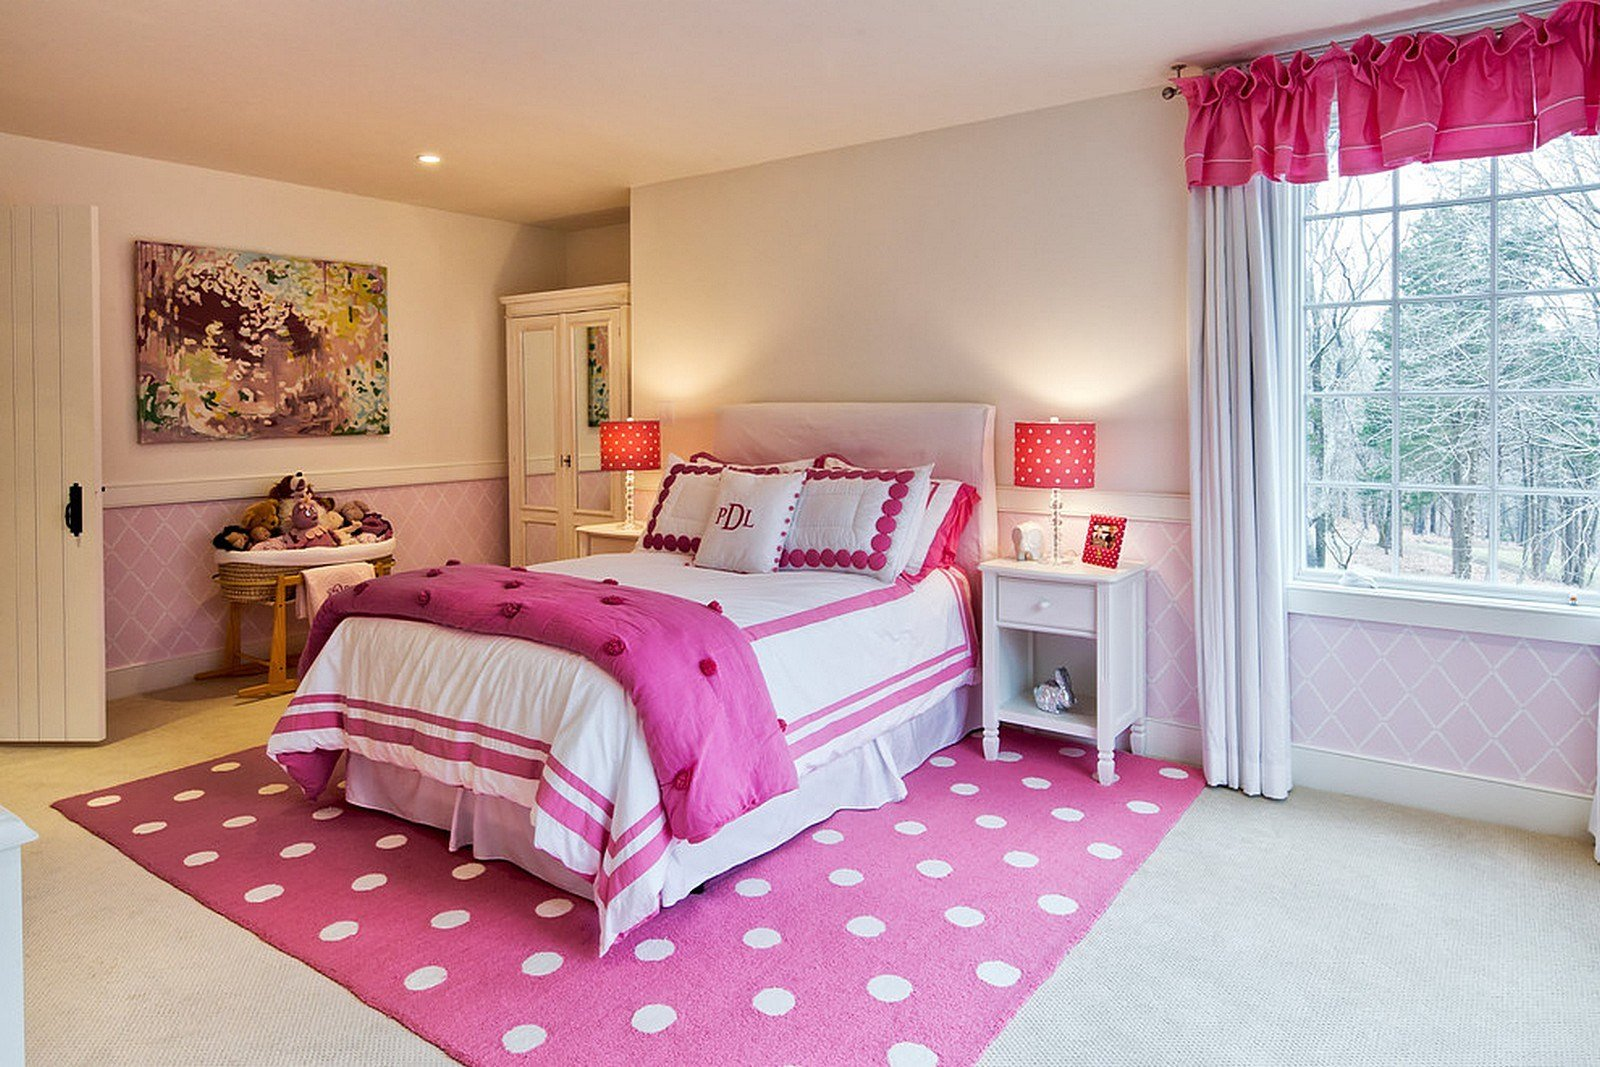 Best 20 Best Modern Pink Girls Bedroom Theydesign Net Theydesign Net With Pictures